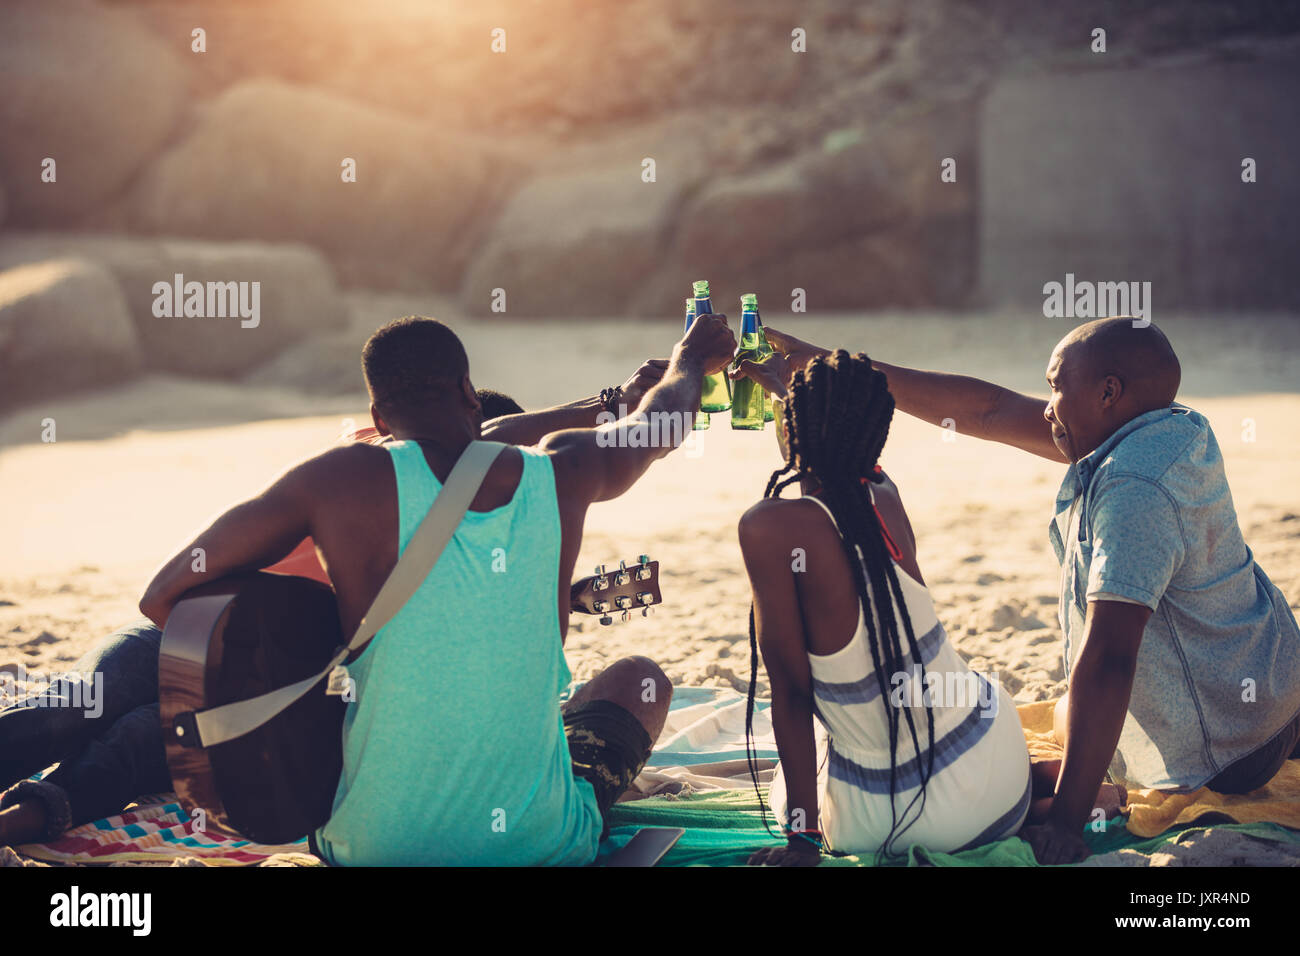 Young people toasting with beer bottles while sitting on beach. Group of friends having drinks together. - Stock Image